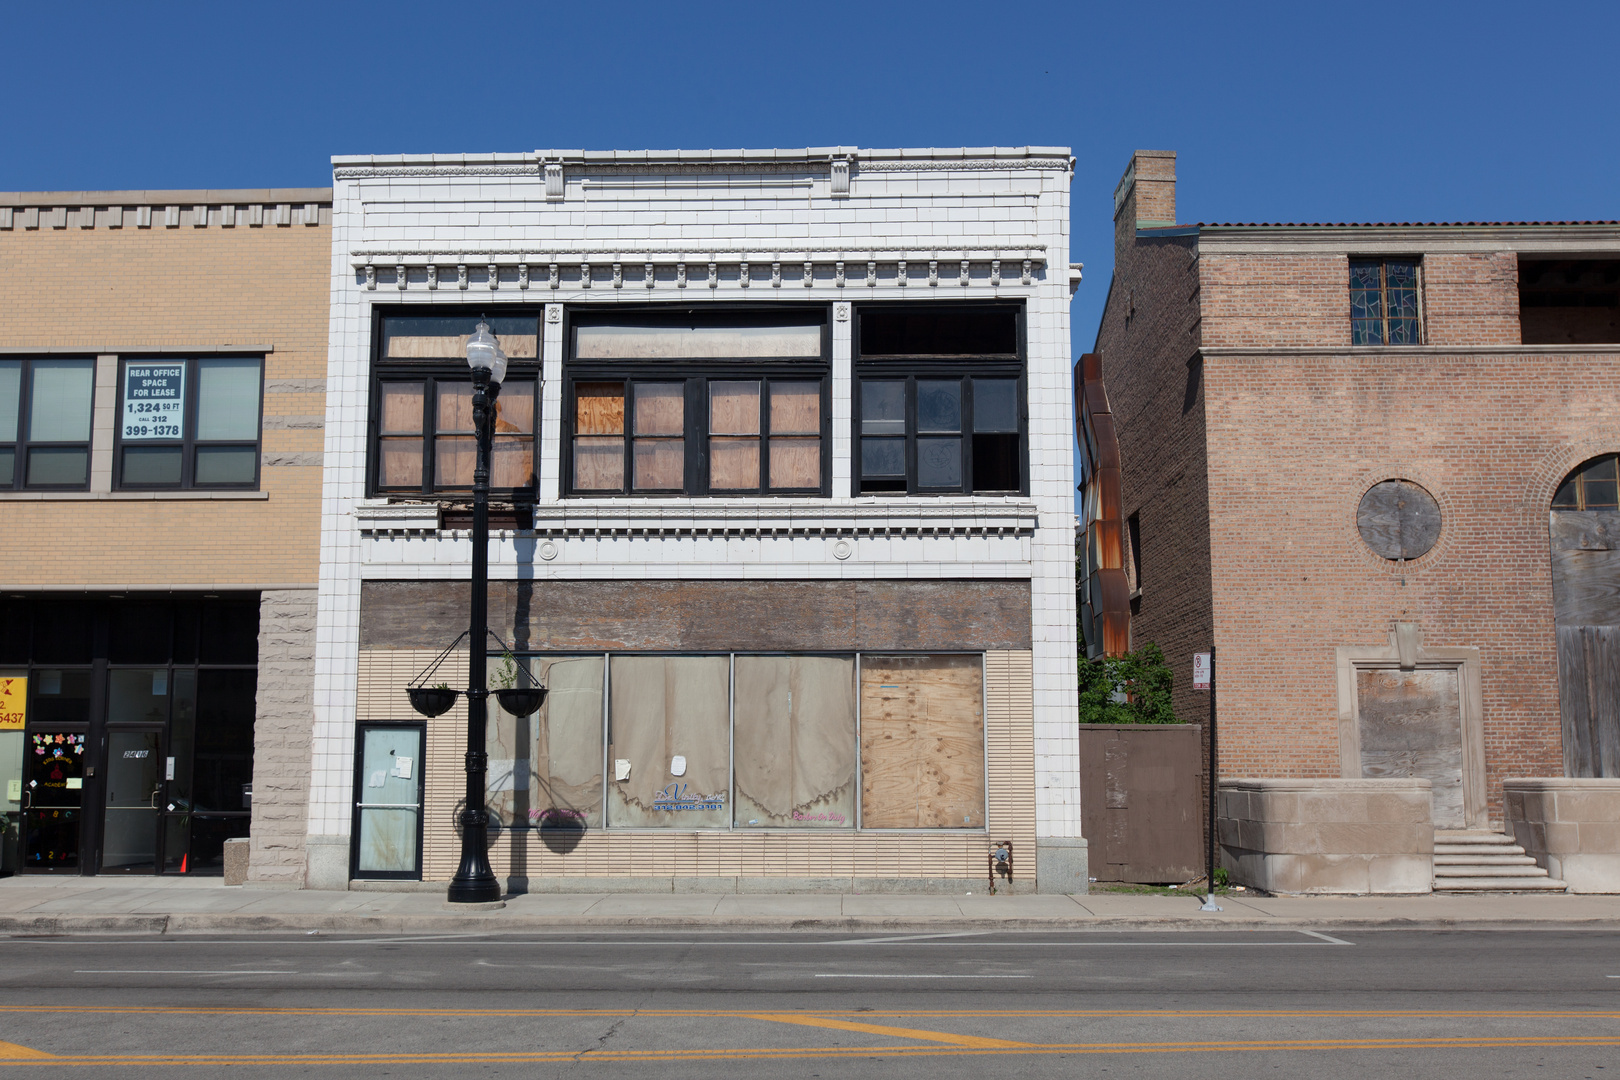 Vacant Storefront on Chicago's South Michigan Avenue